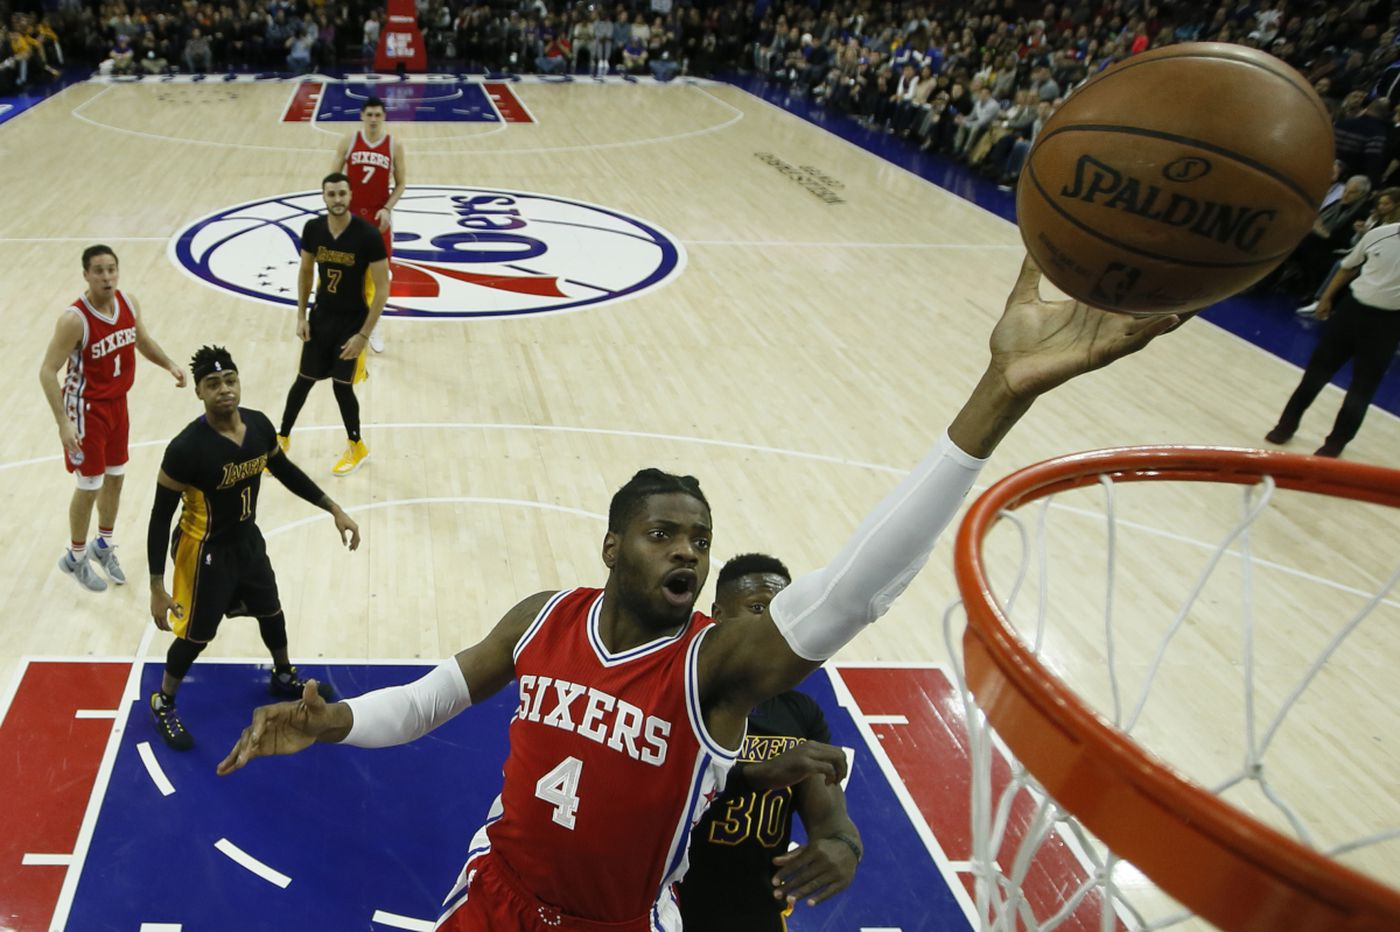 Frustrated Noel after Sixers' loss: 'I'm too good to be playing eight minutes'